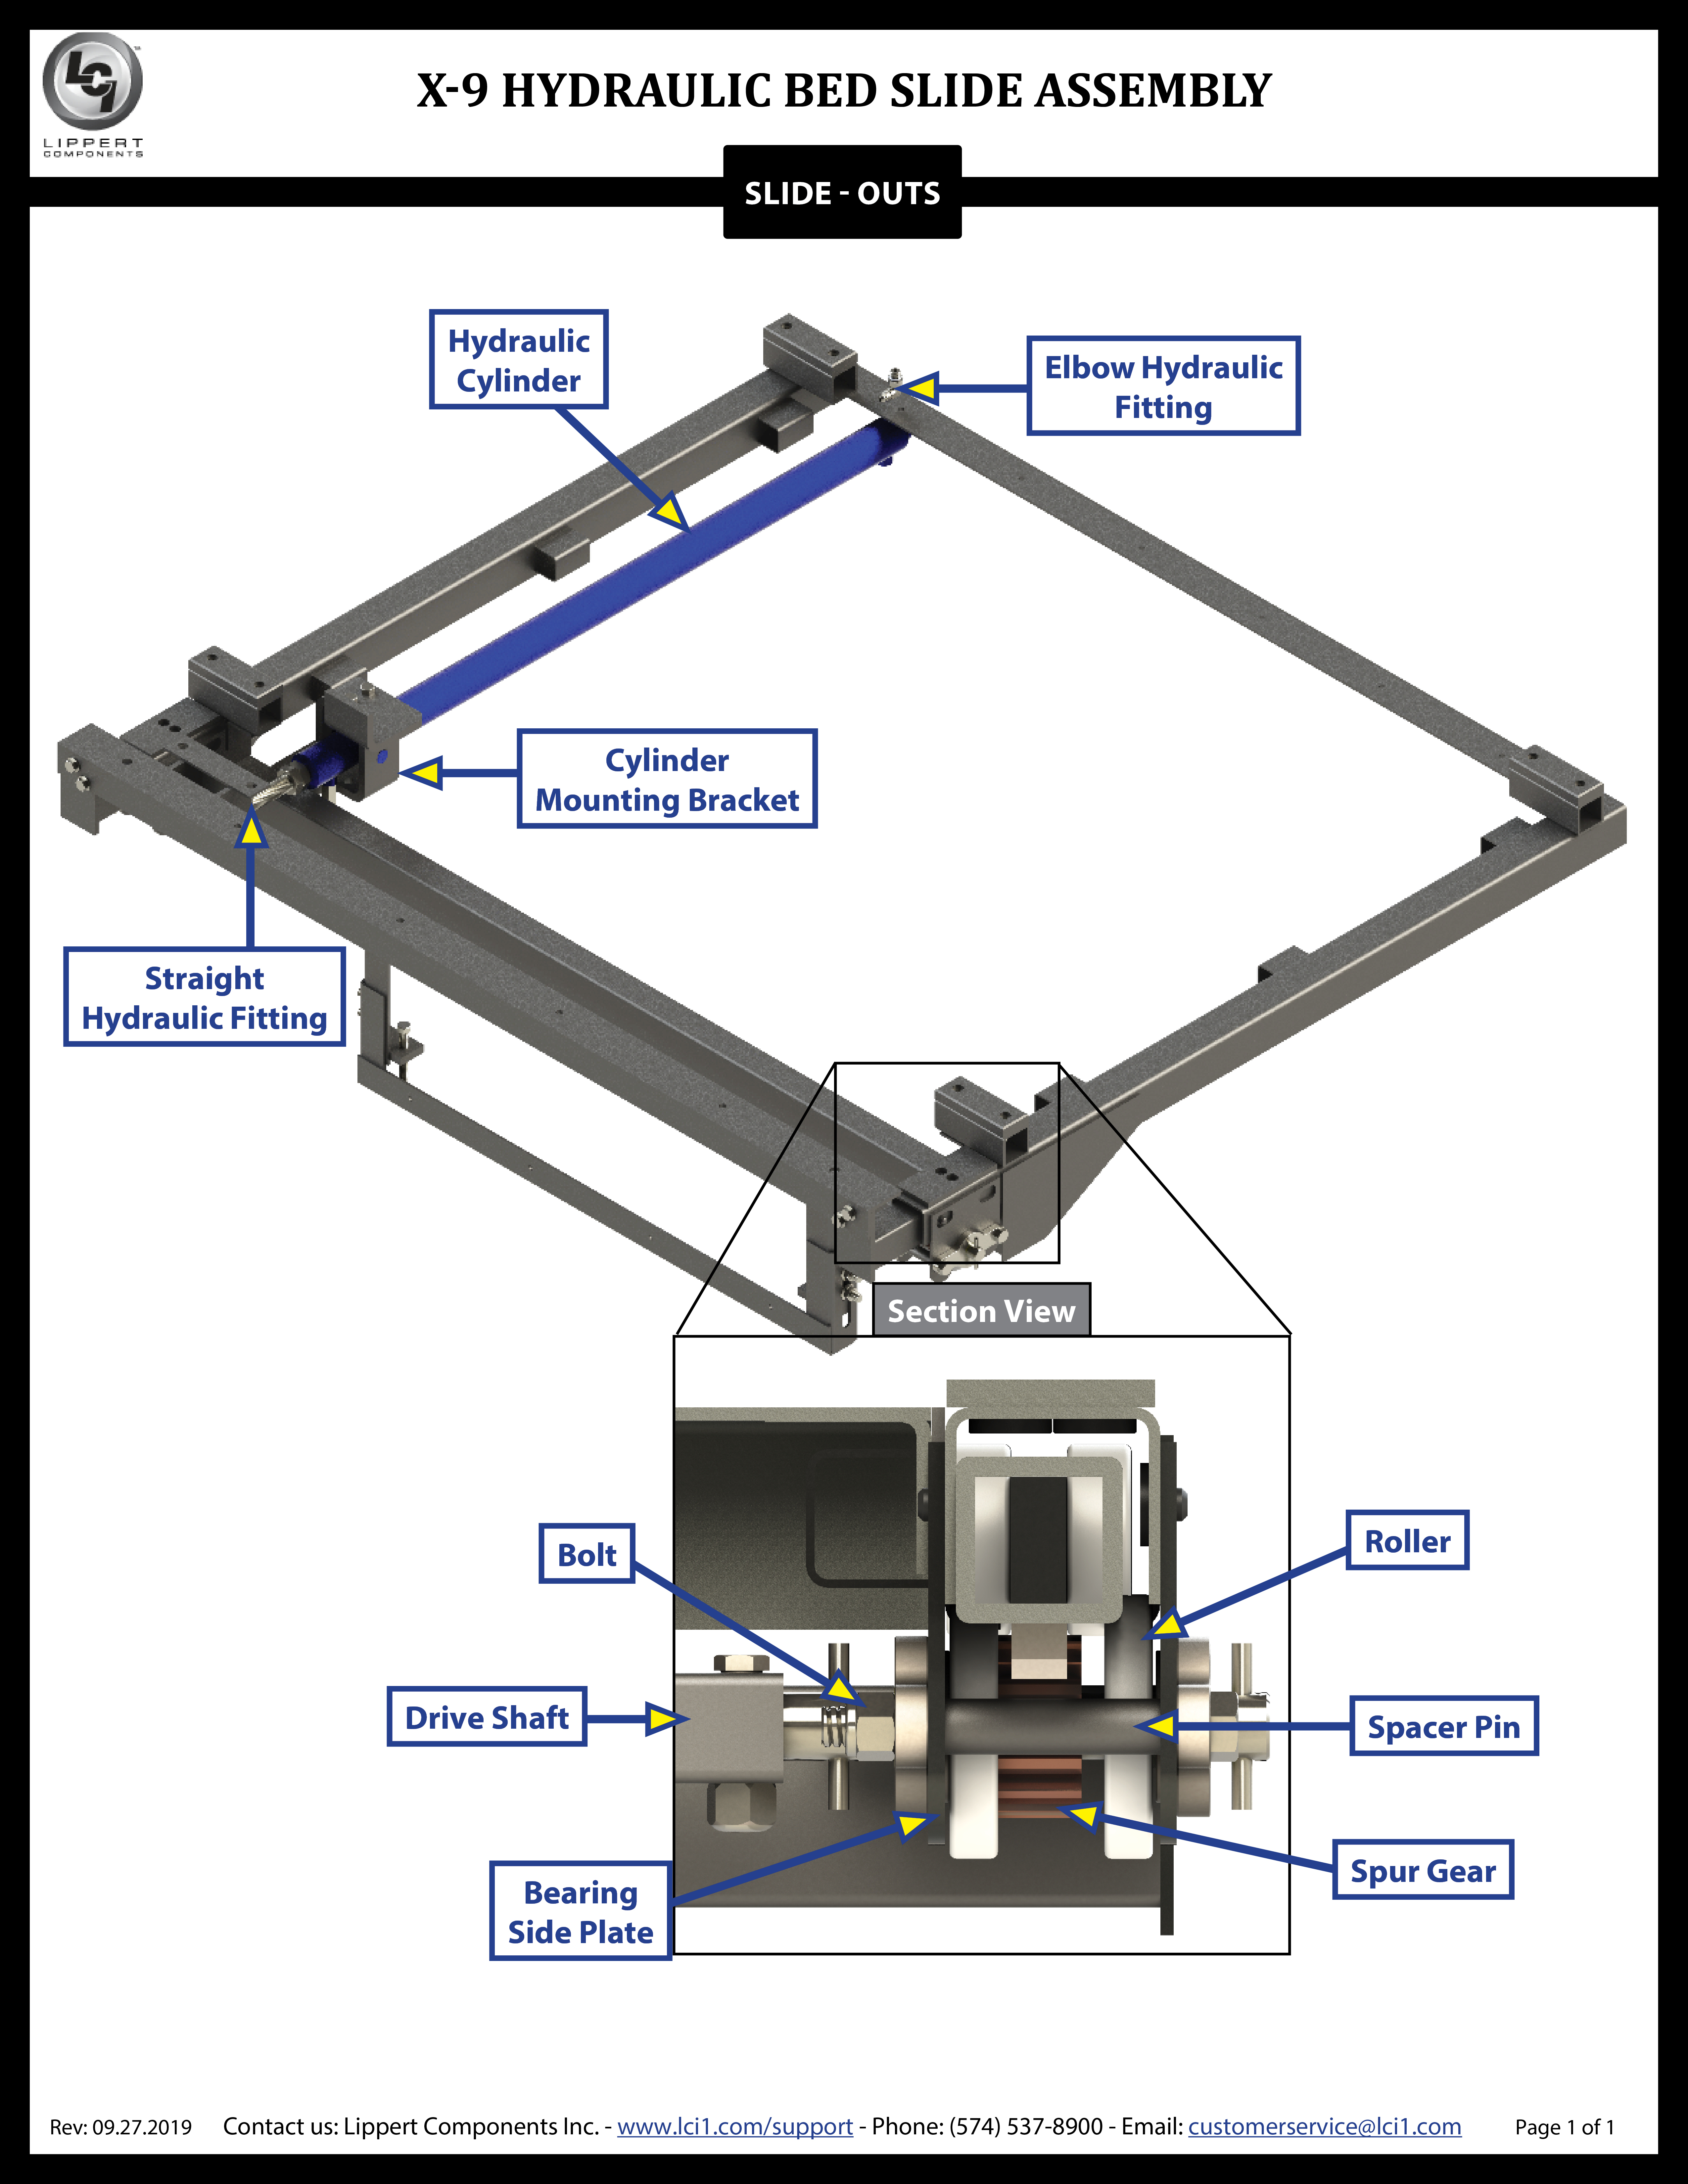 X-9 Hydraulic Bed Slide-Out System Assembly